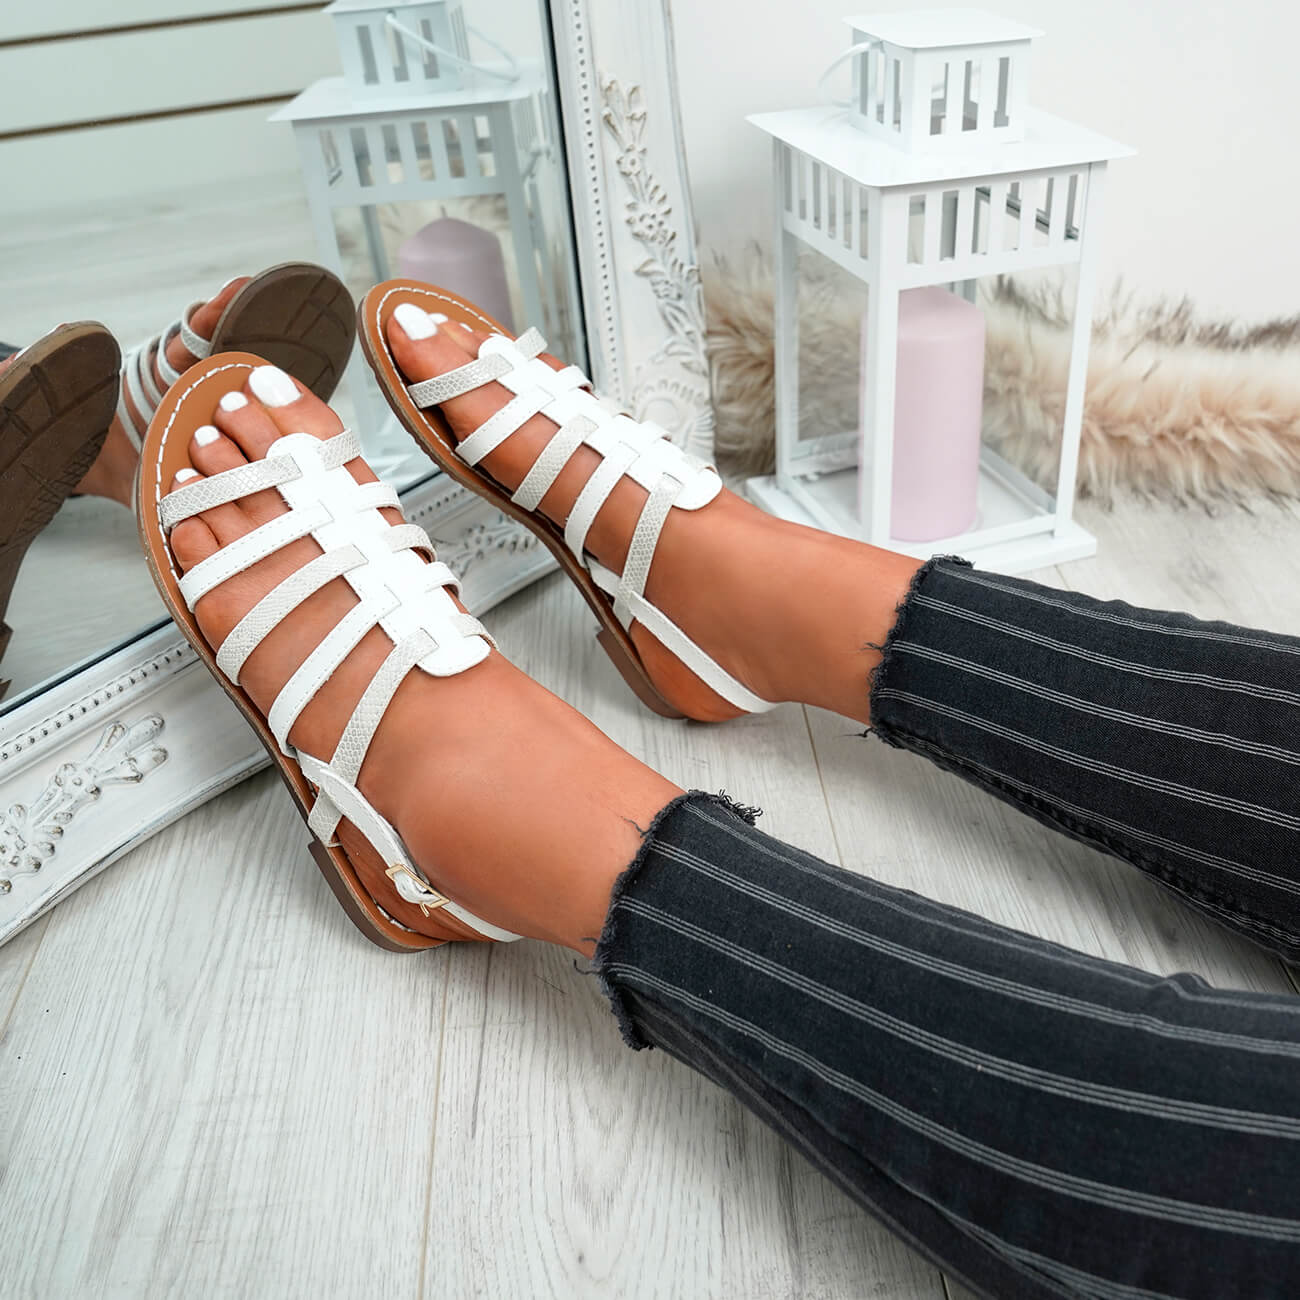 WOMENS-LADIES-BUCKLE-STRAP-FLAT-SUMMER-SANDALS-CASUAL-HOLIDAY-COMFY-SHOES-SIZE thumbnail 35